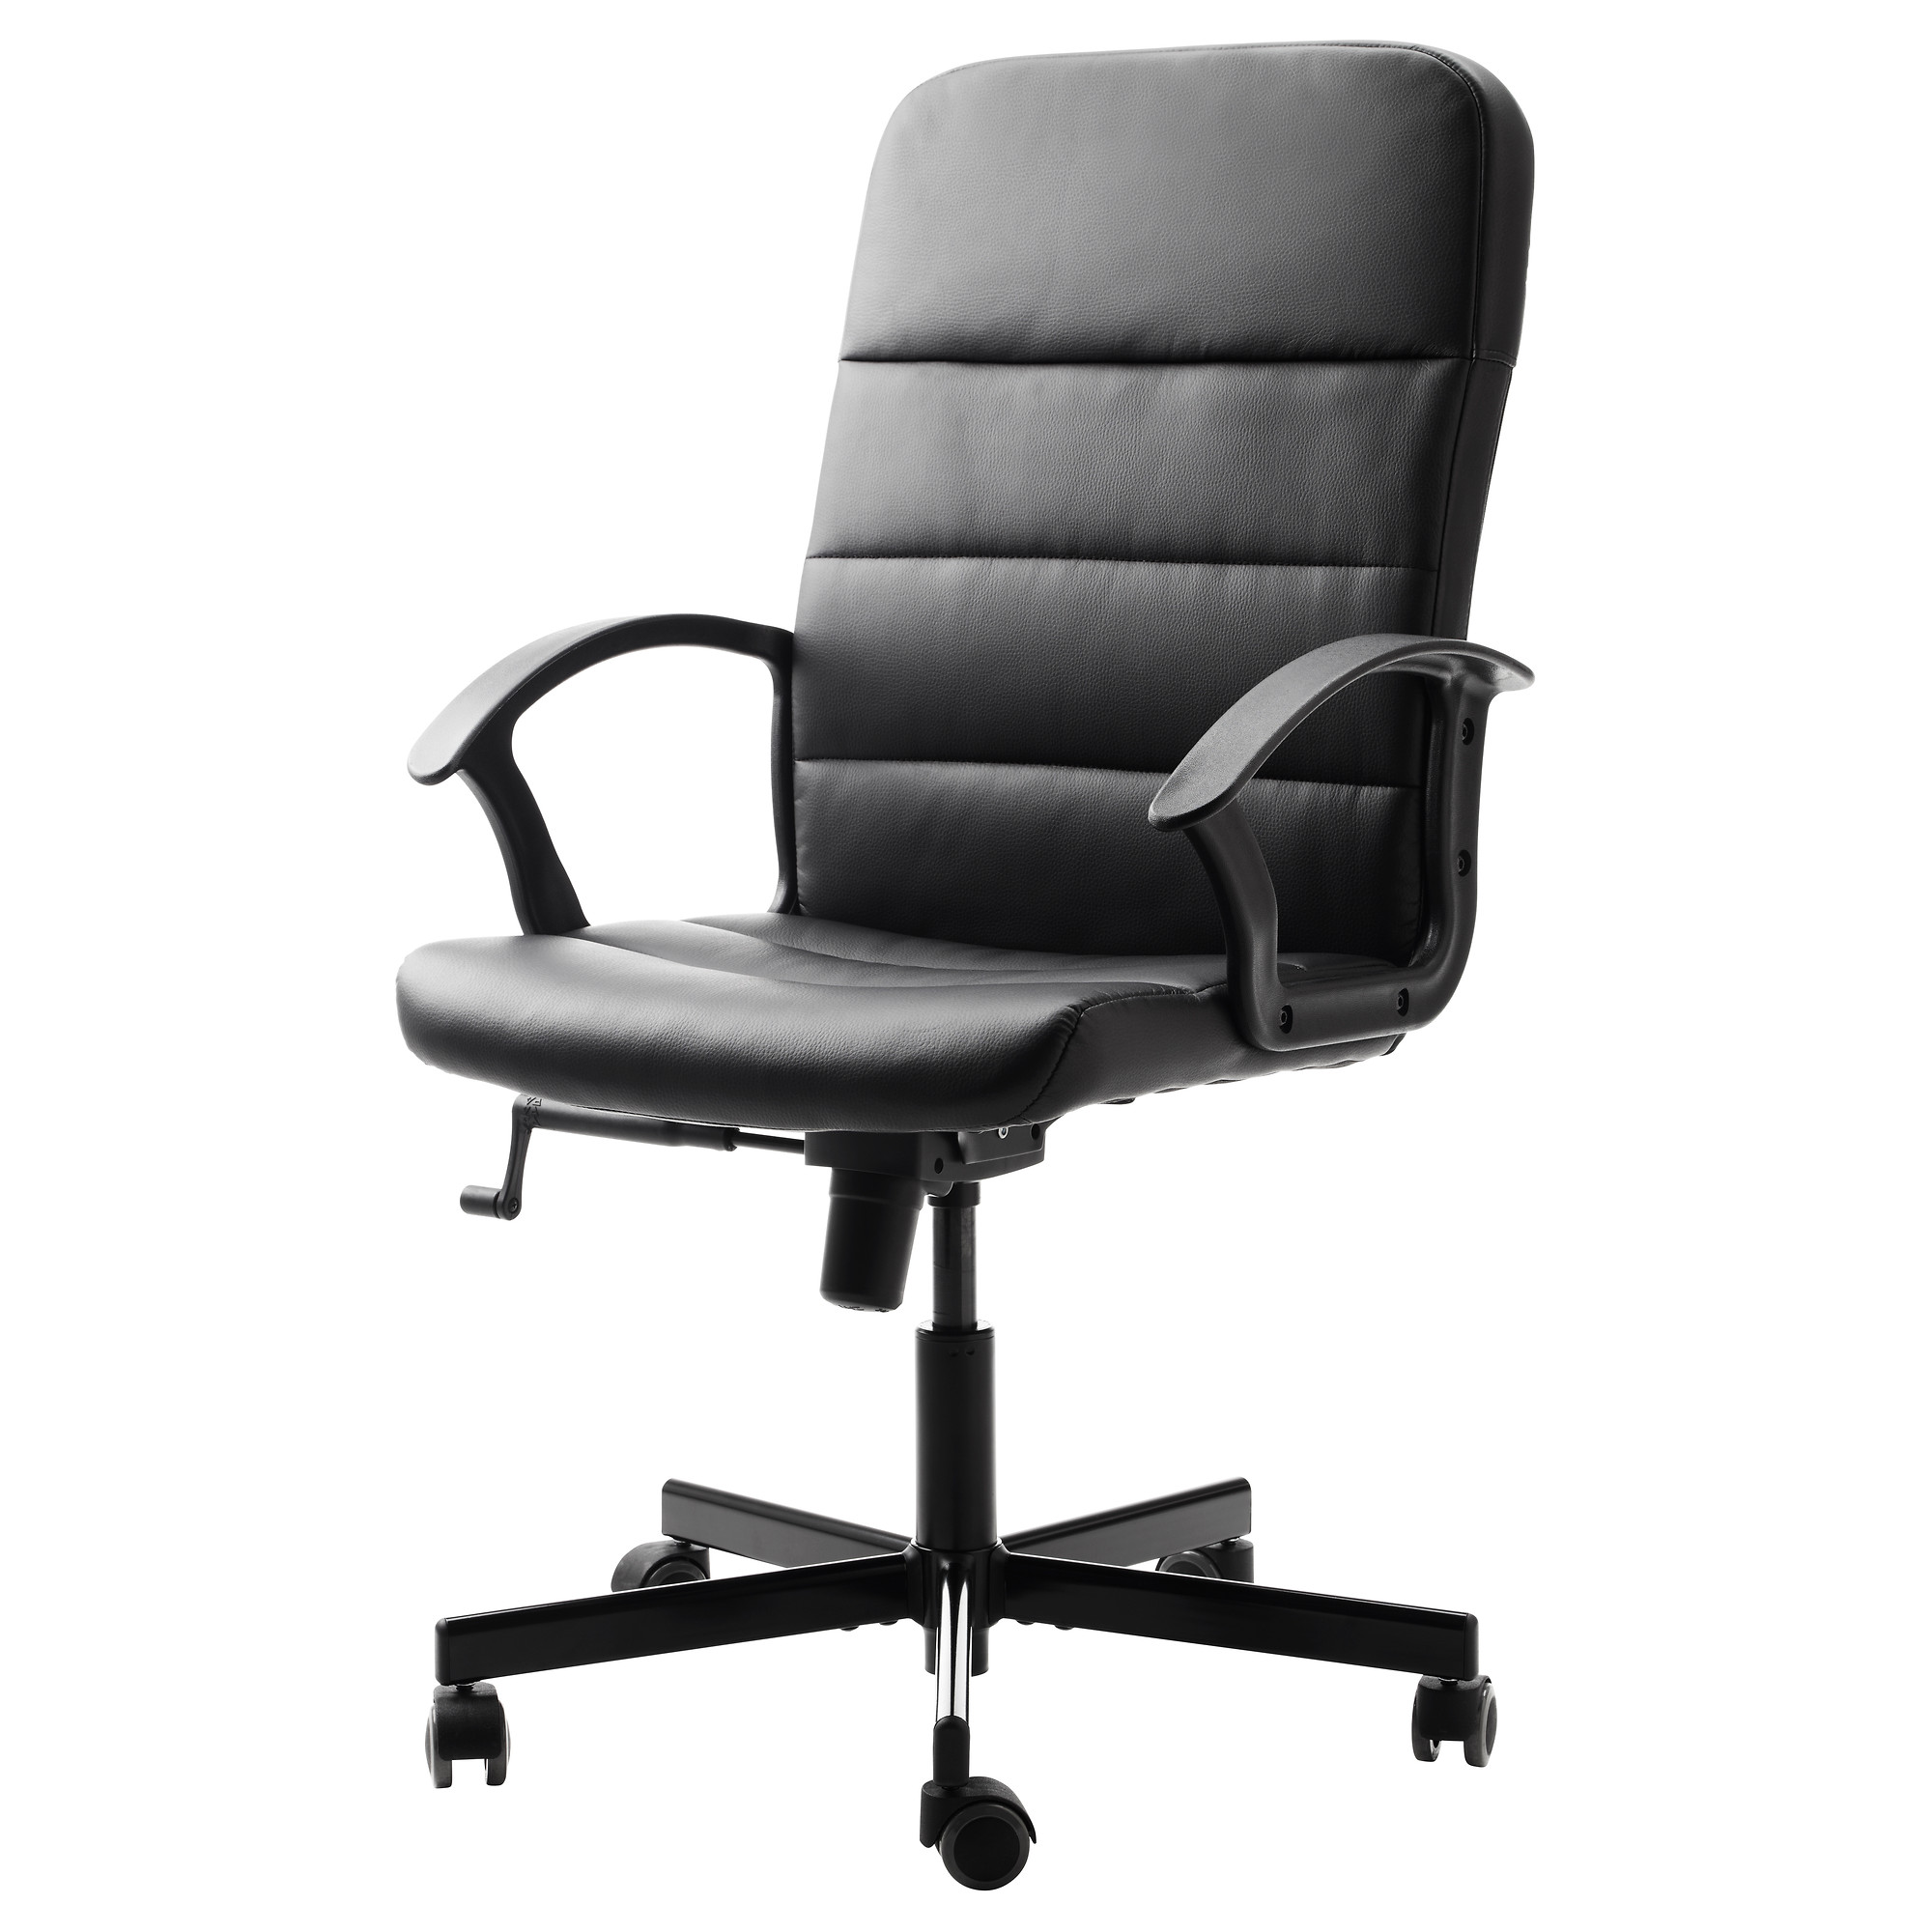 office chair wiki. 0121244 PE277975 S5 Office Chair Wiki